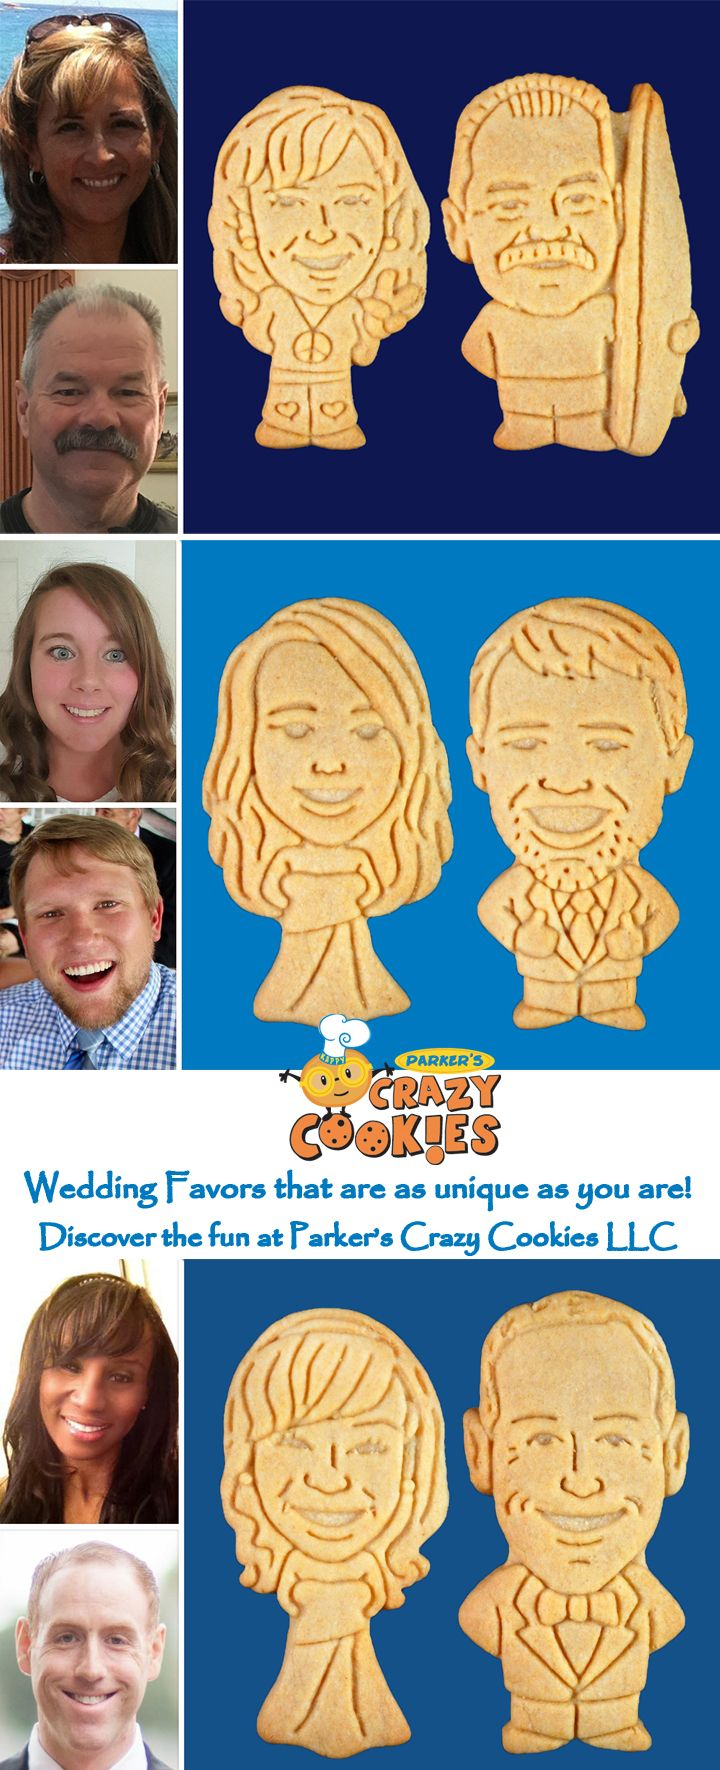 Unique Wedding Favor Ideas!! Create custom cookies of the bride & groom for your wedding day! Parker's Crazy Cookies, the leader in unique edible wedding favors!! Discover the magic at www.parkerscrazycookies.com. As seen on the Today Show & Food Network!